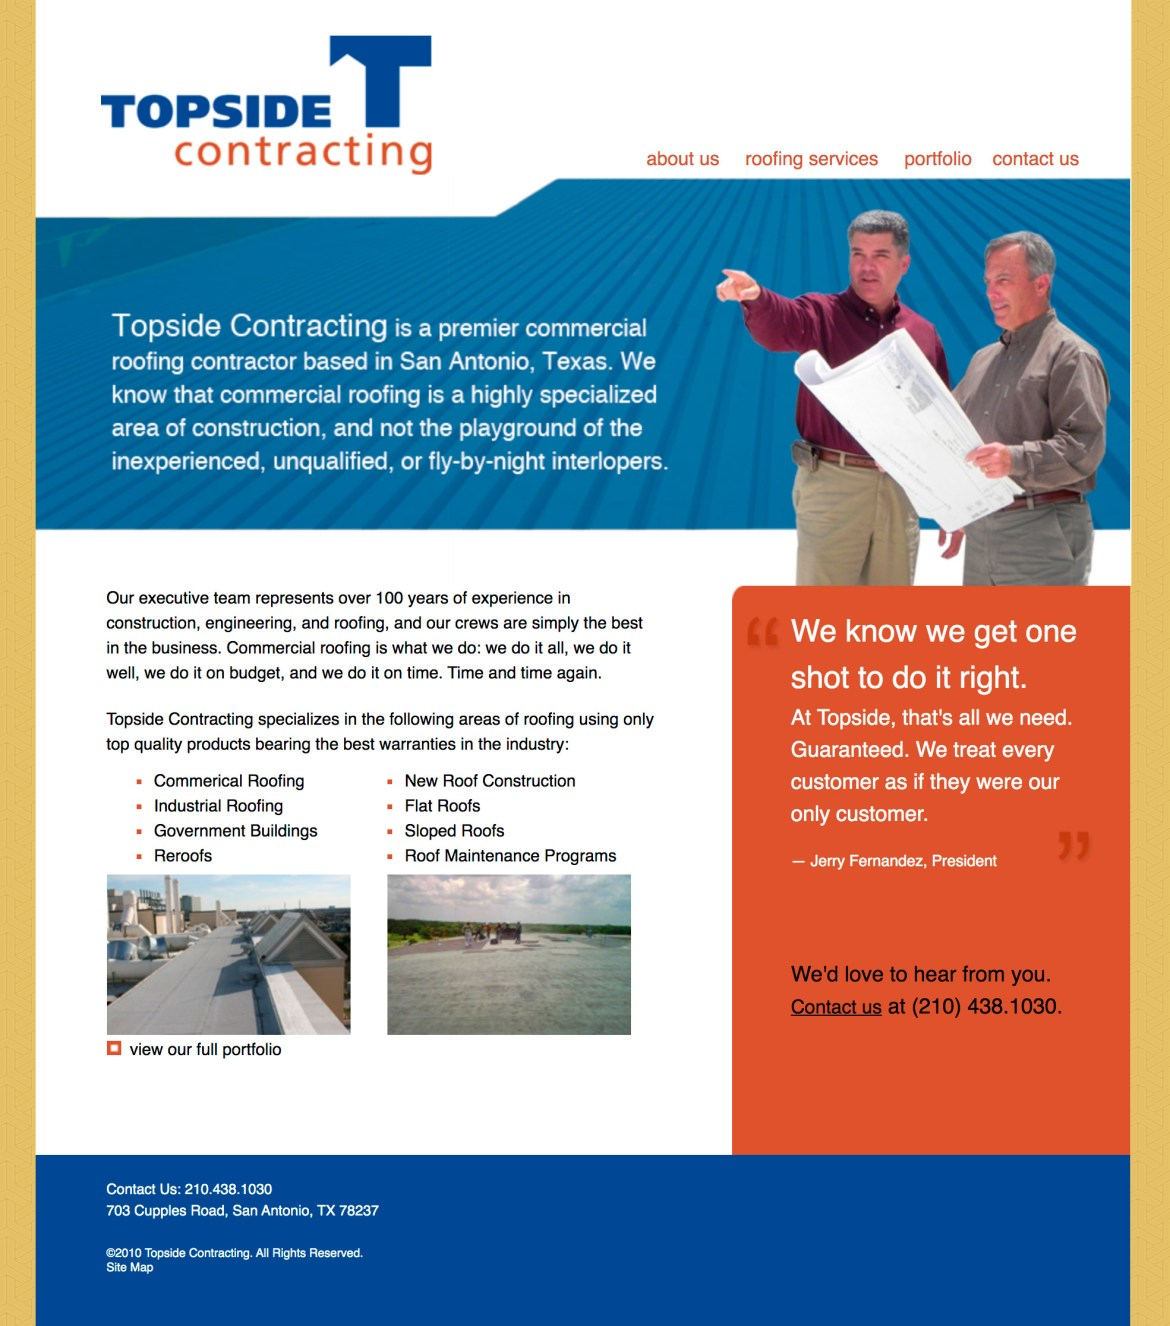 Topside Contracting Website Homepage